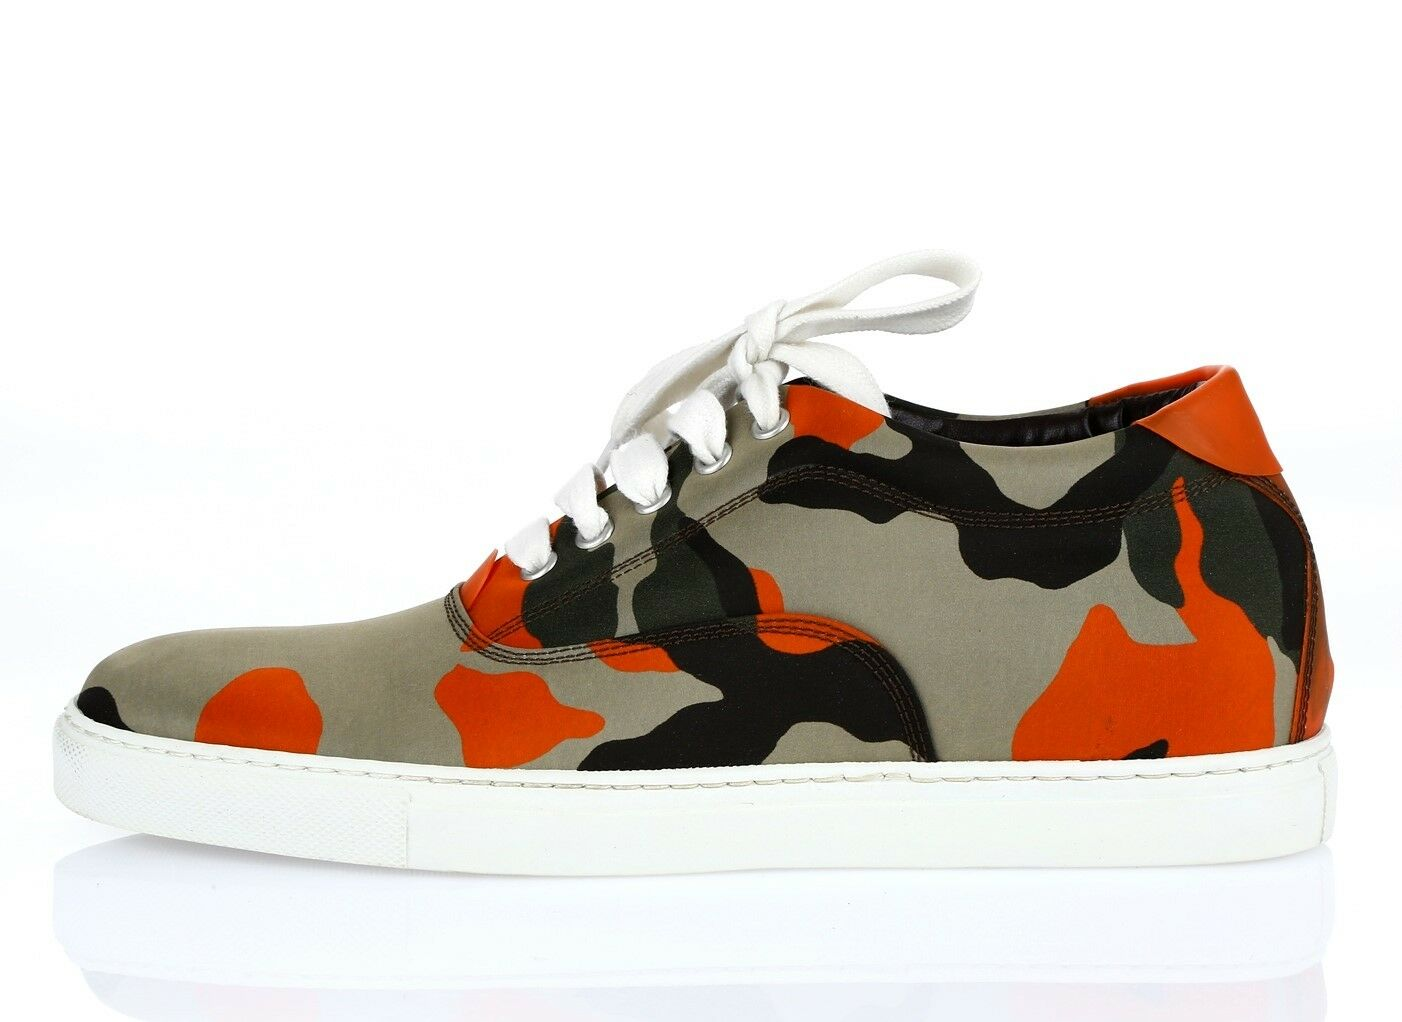 DSQUARED2 Military Green/Orange Fabric Fashion Scarpe da Ginnastica Ginnastica Ginnastica Sz. 40 NEW! a0e857